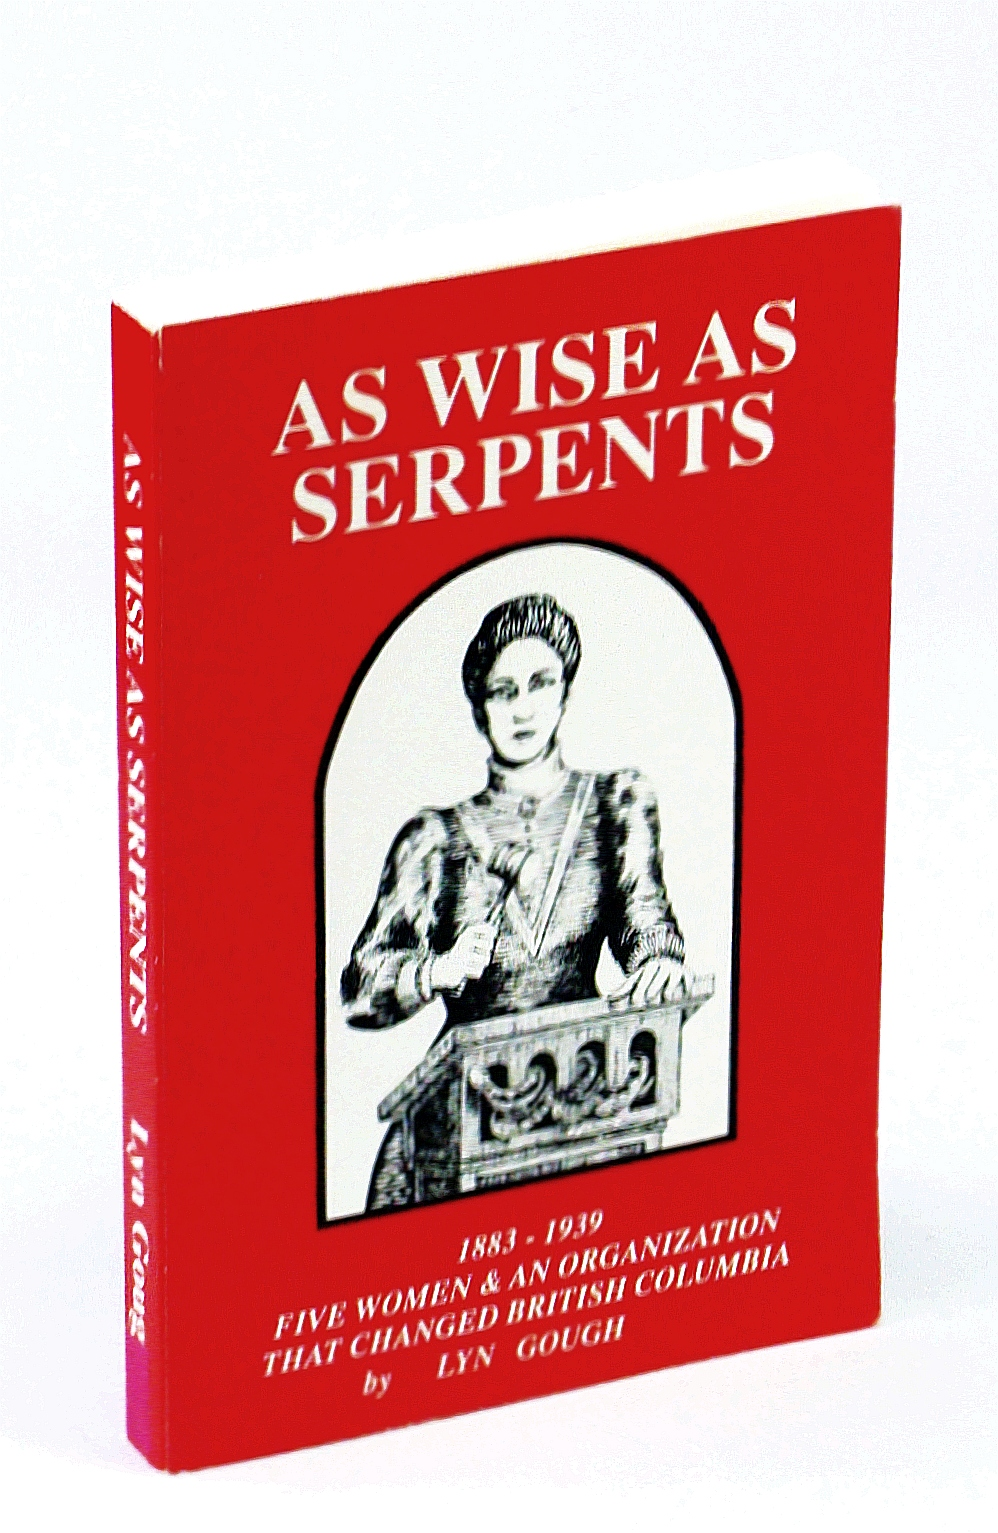 Image for As wise as serpents: Five women & an organization that changed British Columbia : 1883-1939